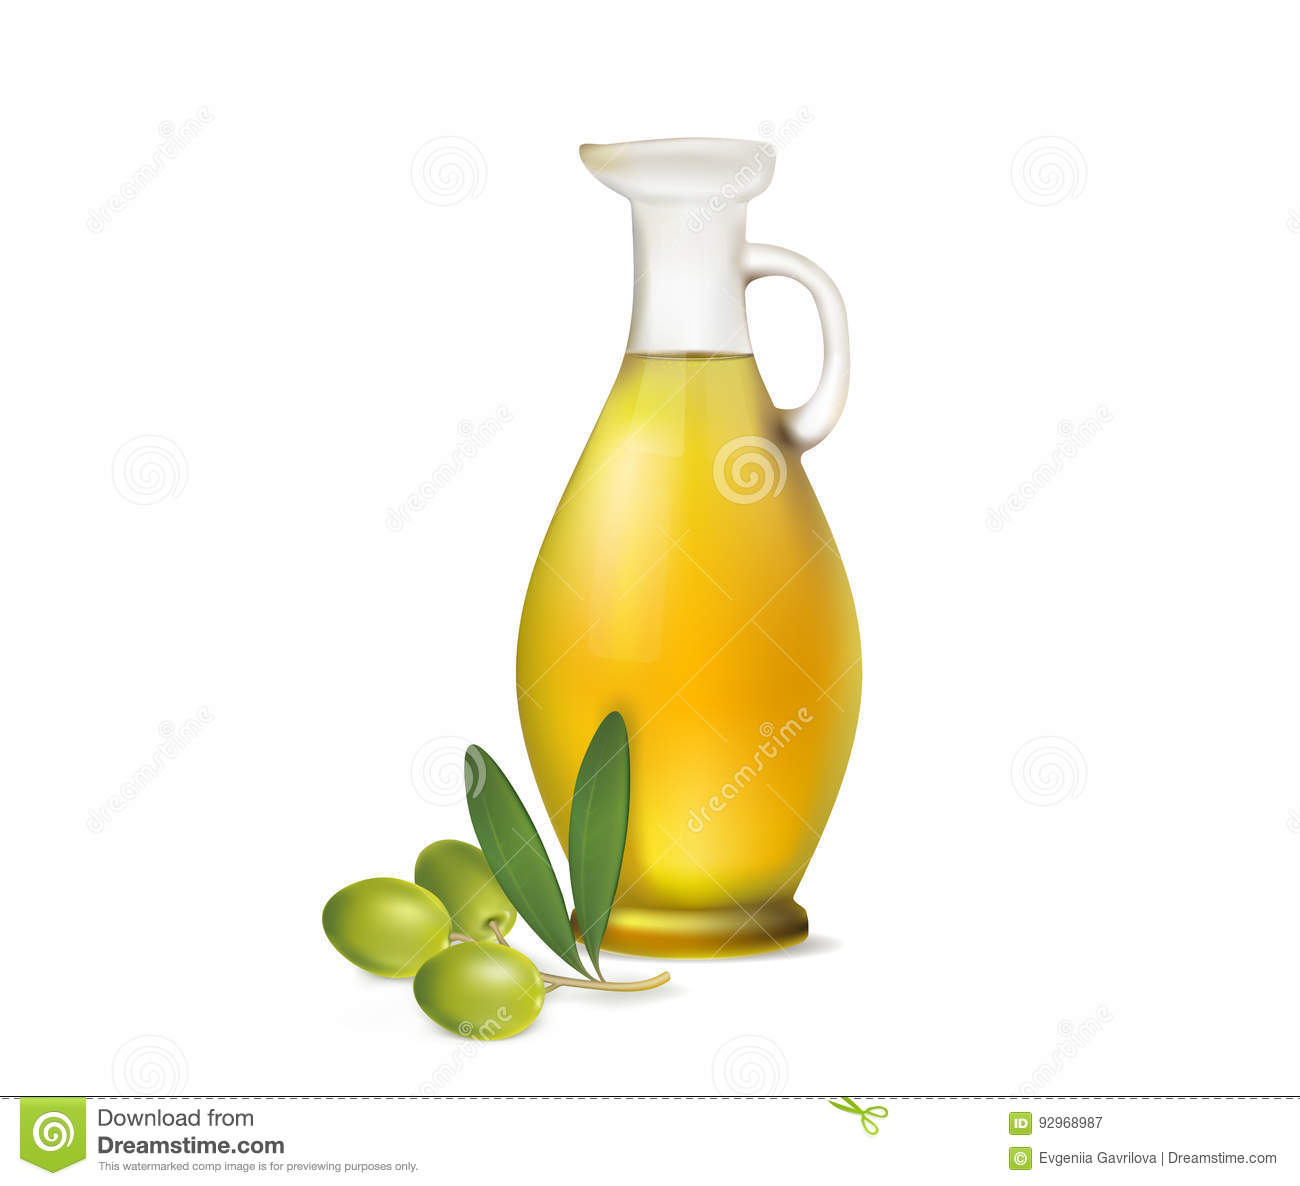 Jug of olive oil and olive branch on a white background